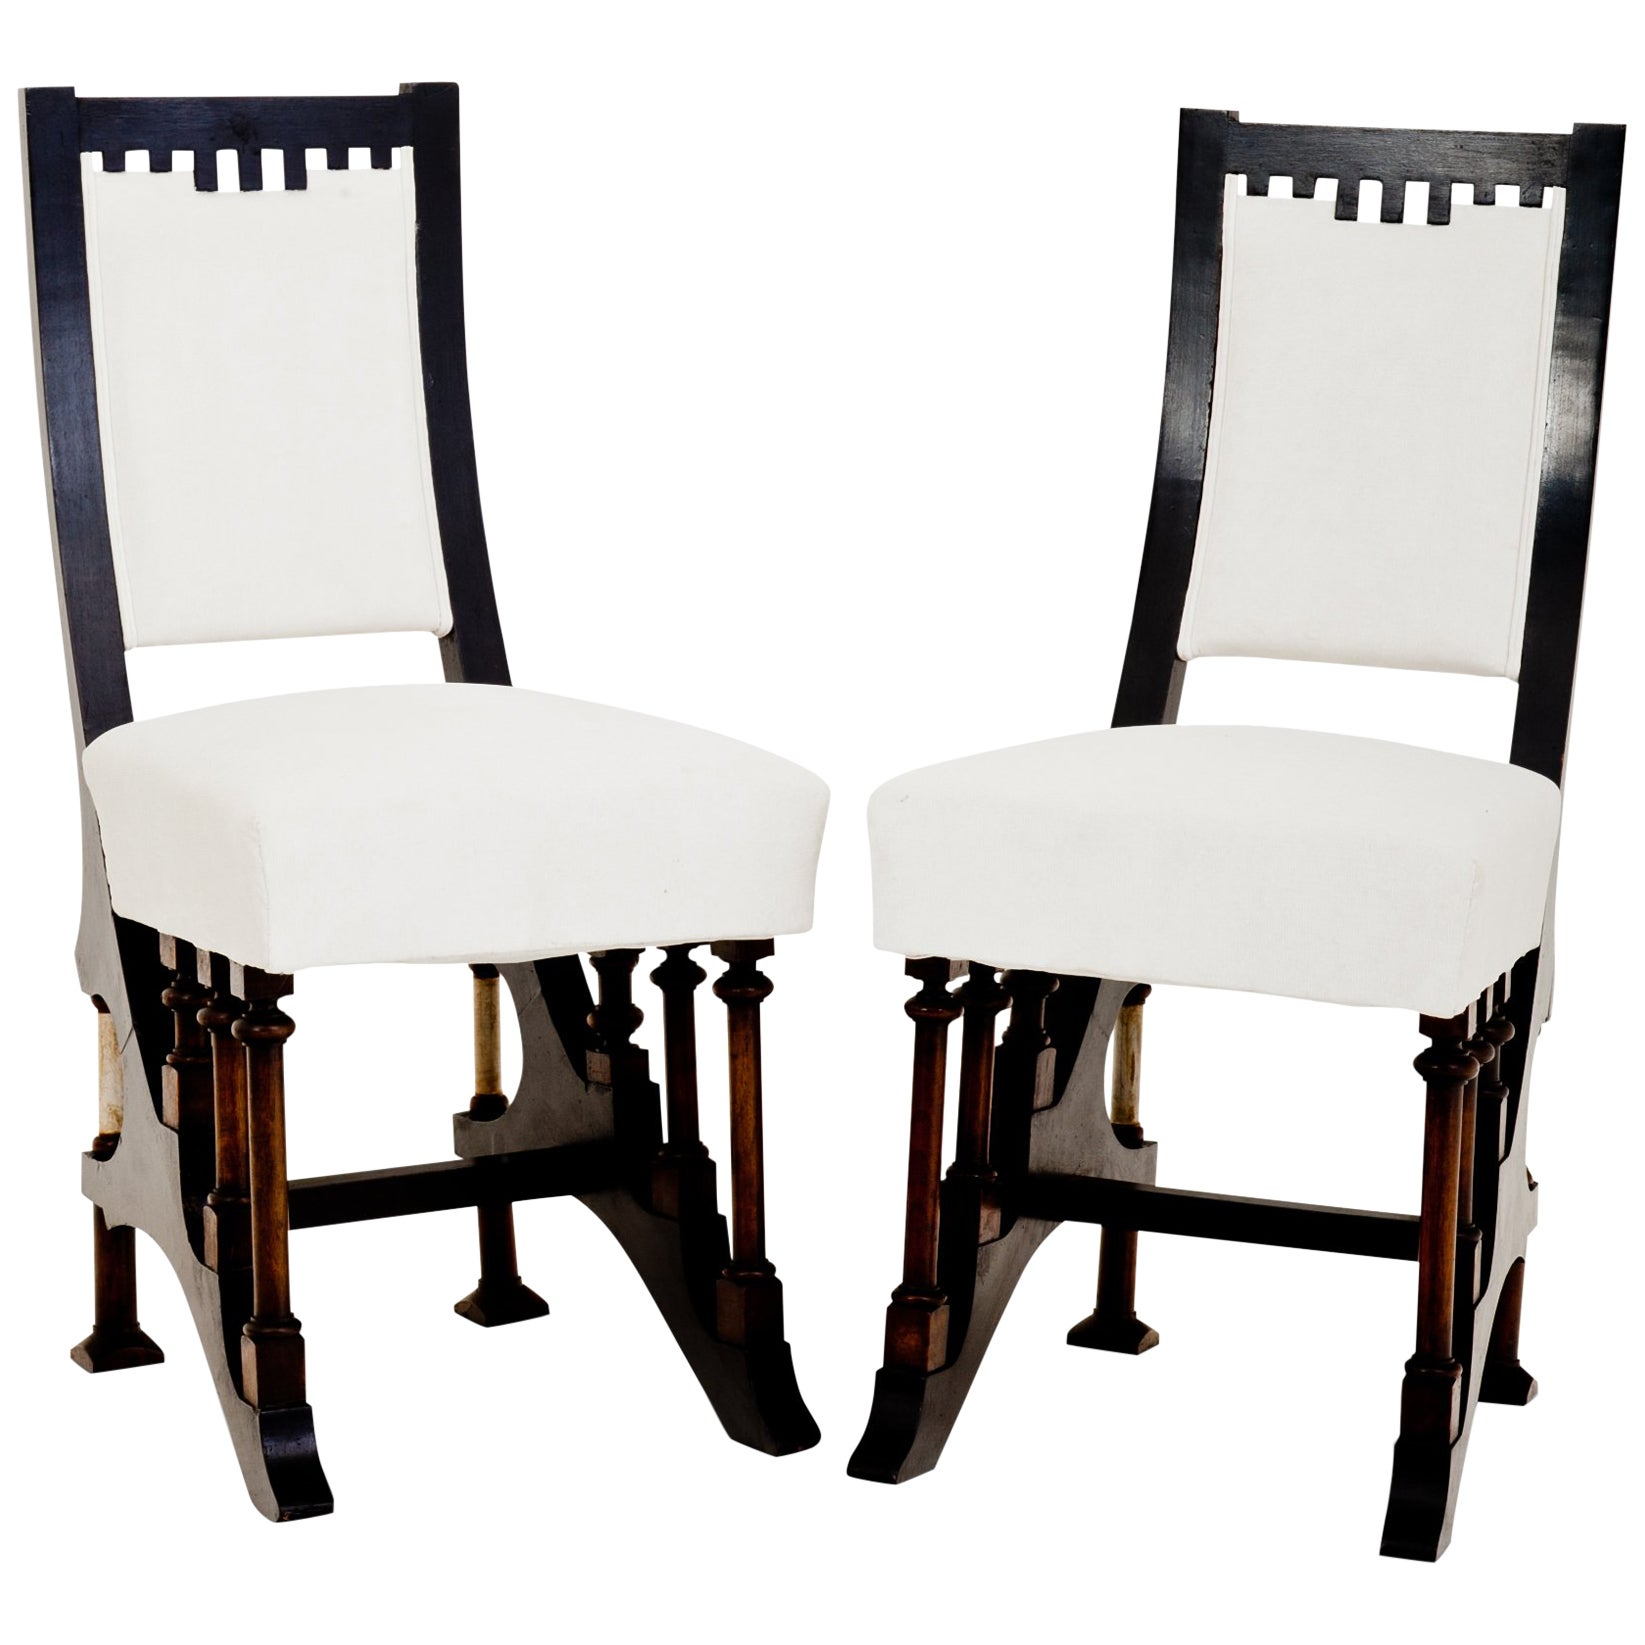 Art Nouveau Chairs in Carlo Bugatti Style, Italy, First Half of the 20th Century